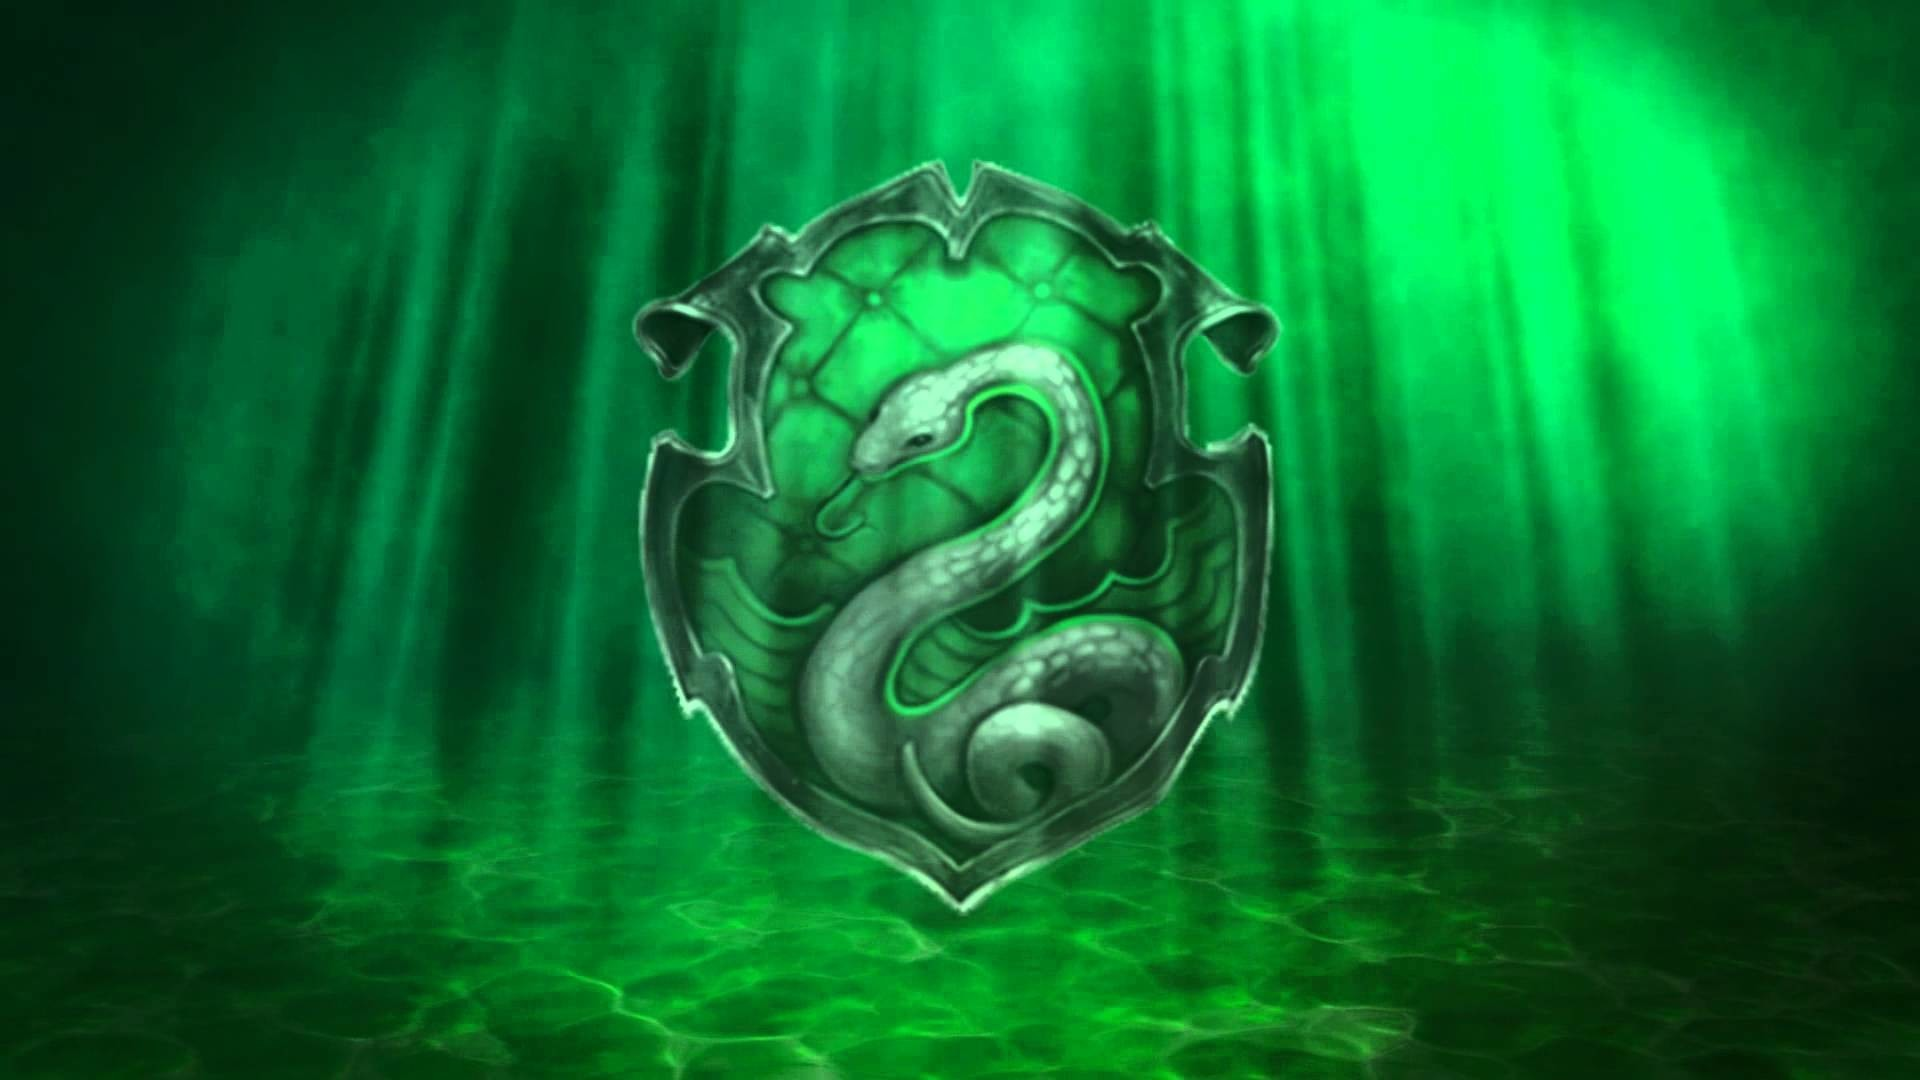 1920x1080, Movies Wallpaper - Slytherin Background - HD Wallpaper